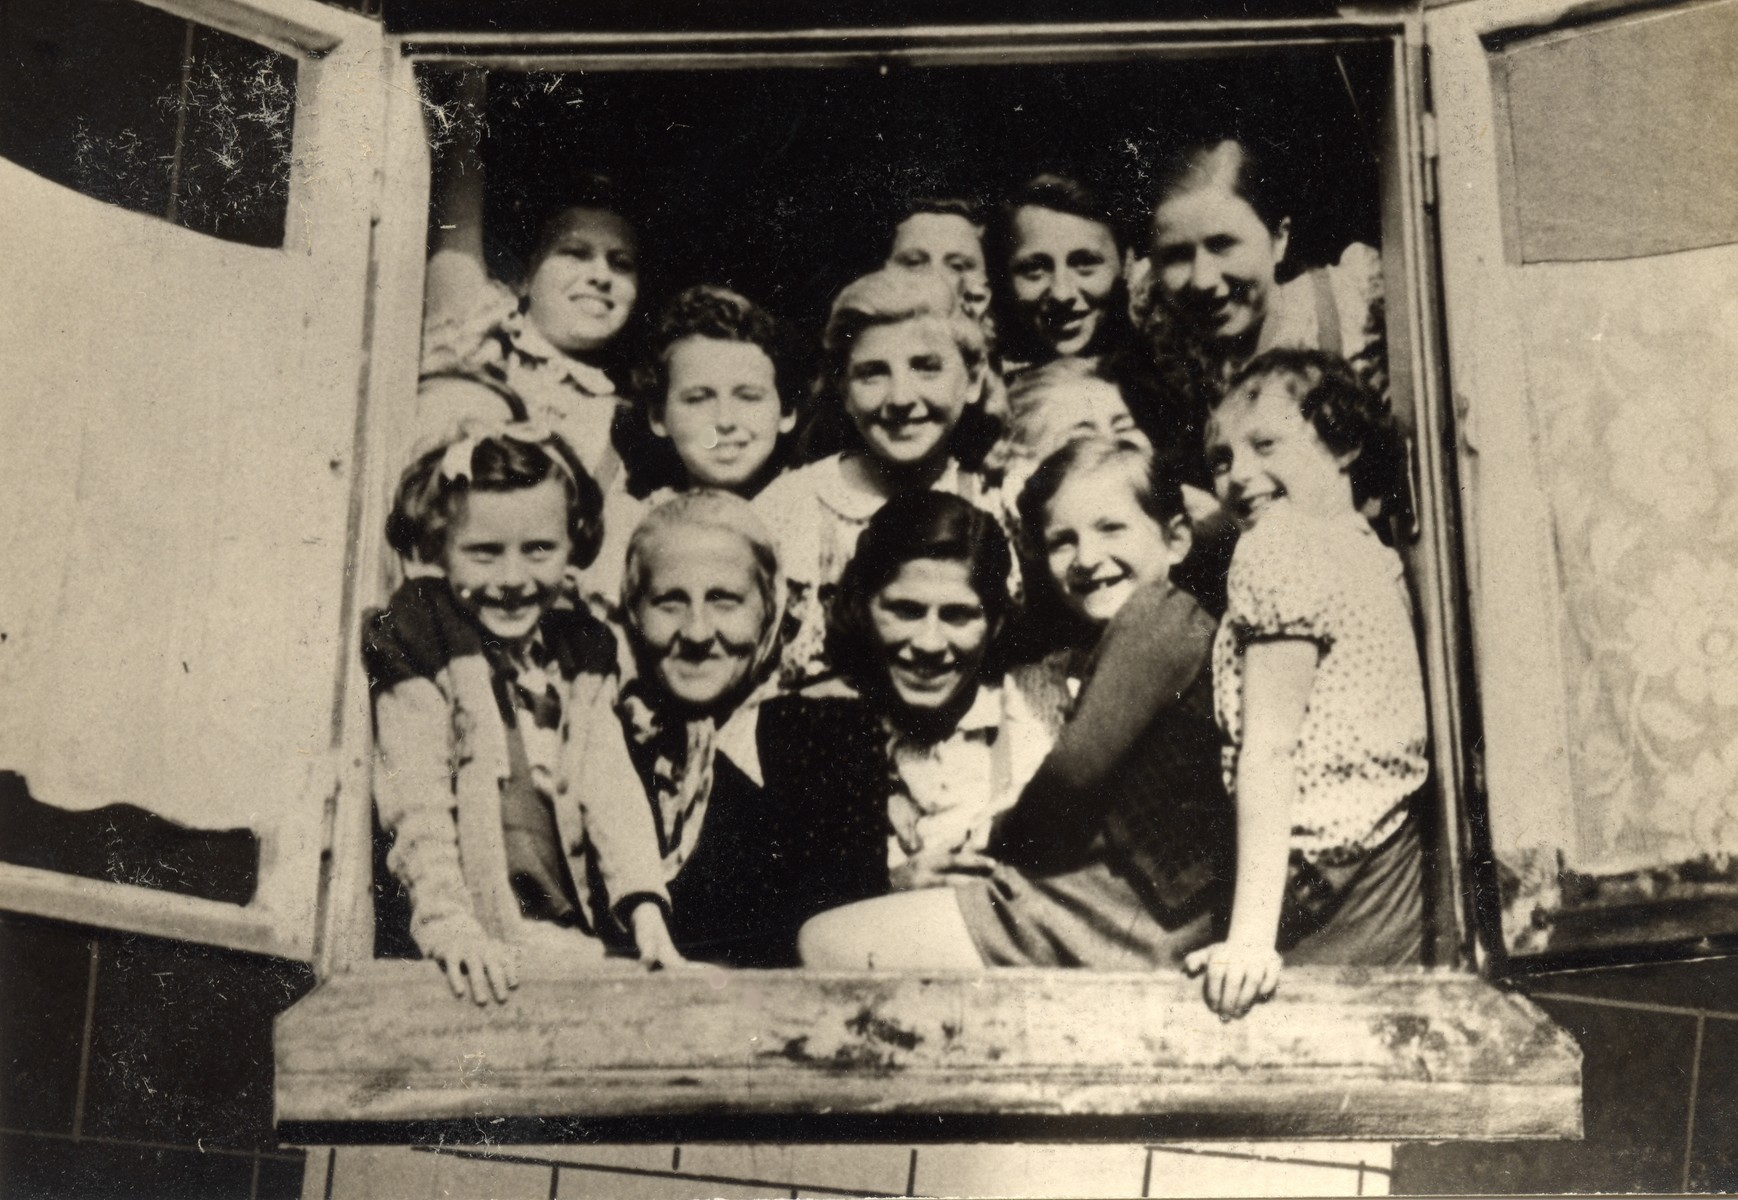 Stella Rein, the headmaster of the Lodz ghetto's high-school, posing with young girls.   Pictured in the front row, right, is Felicia (Faiga) Ferszter, daughter of Leon (Leib) Ferszter and his first wife Zelda (nee Asz) Ferszter.  Felicia was born in February 1931 in Lodz and died with her mother in Auschwitz in August 1944.